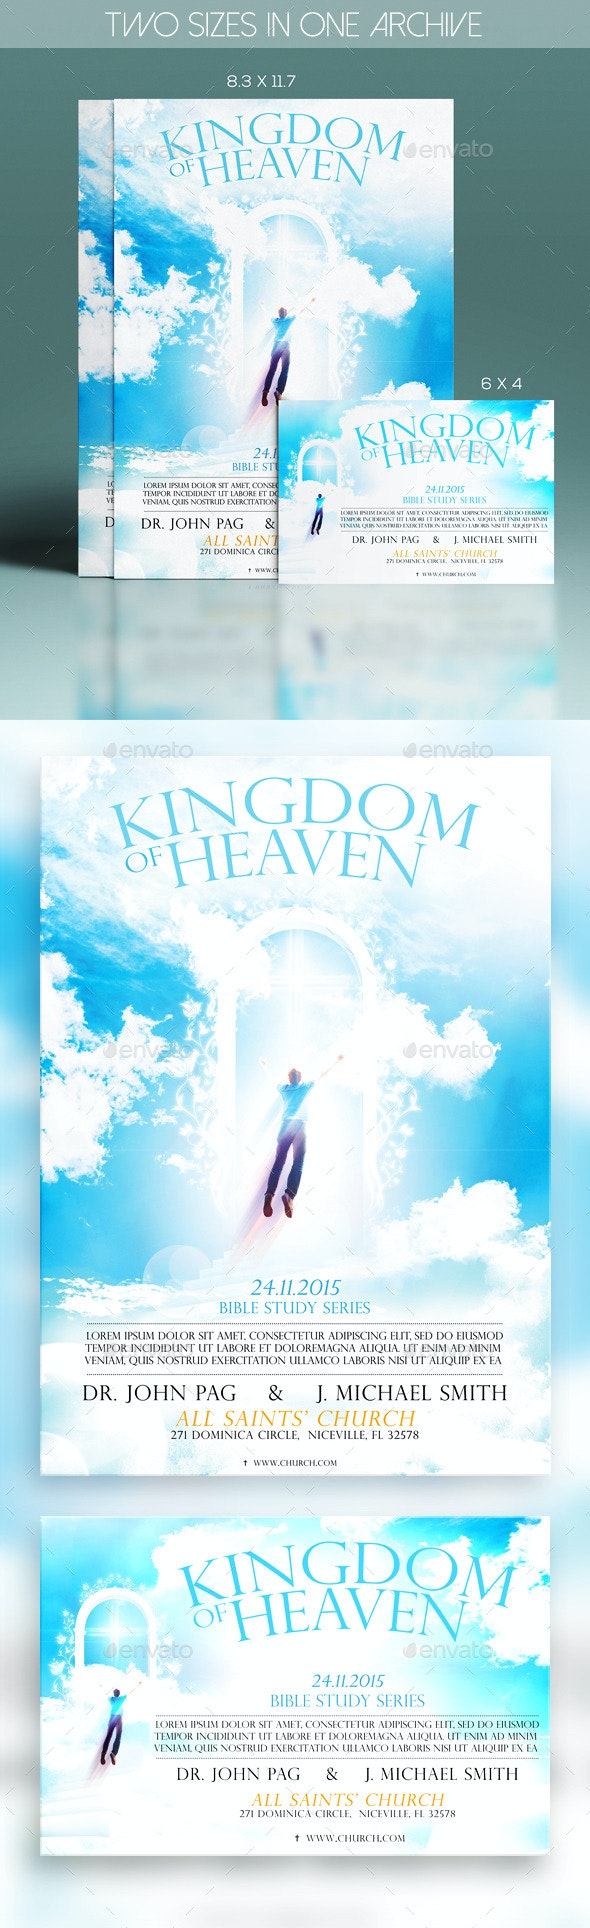 Kingdom Of Heaven - Church Flyers